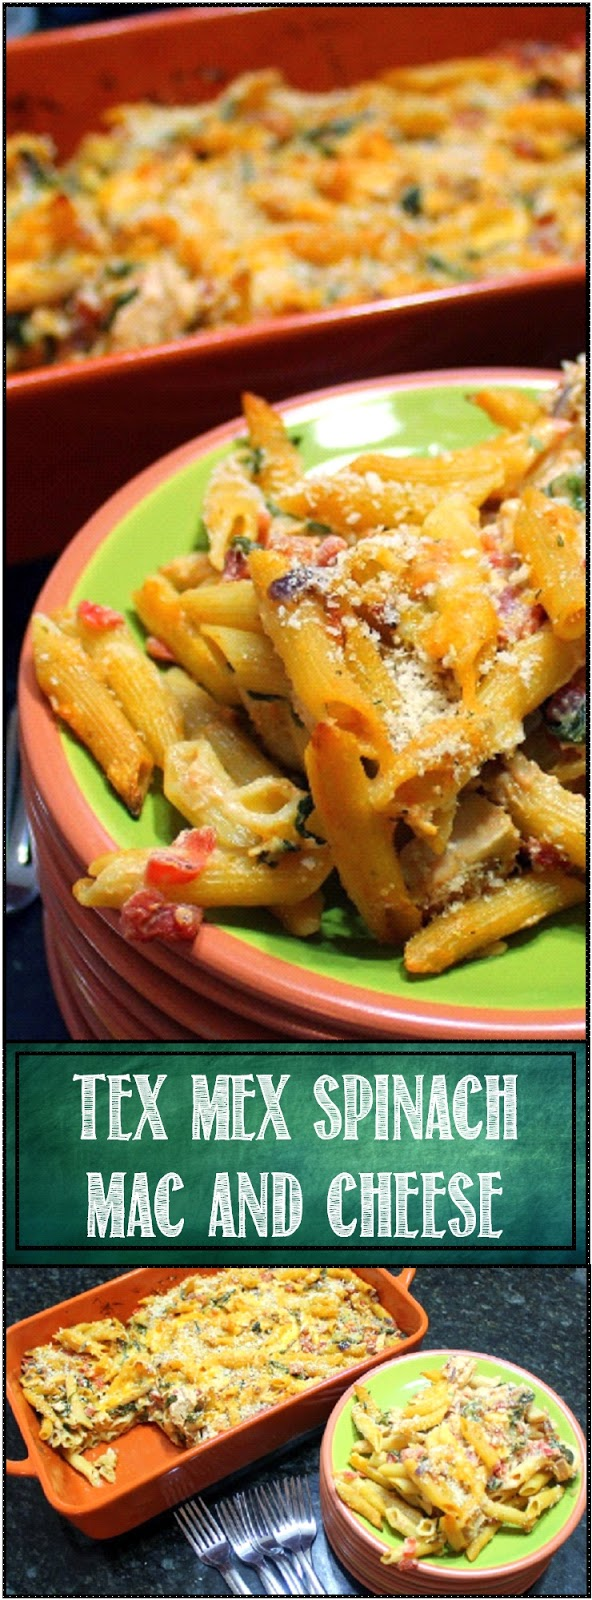 52 Ways to Cook: Tex-Mex Spinach Mac and Cheese - 52 Uses ...